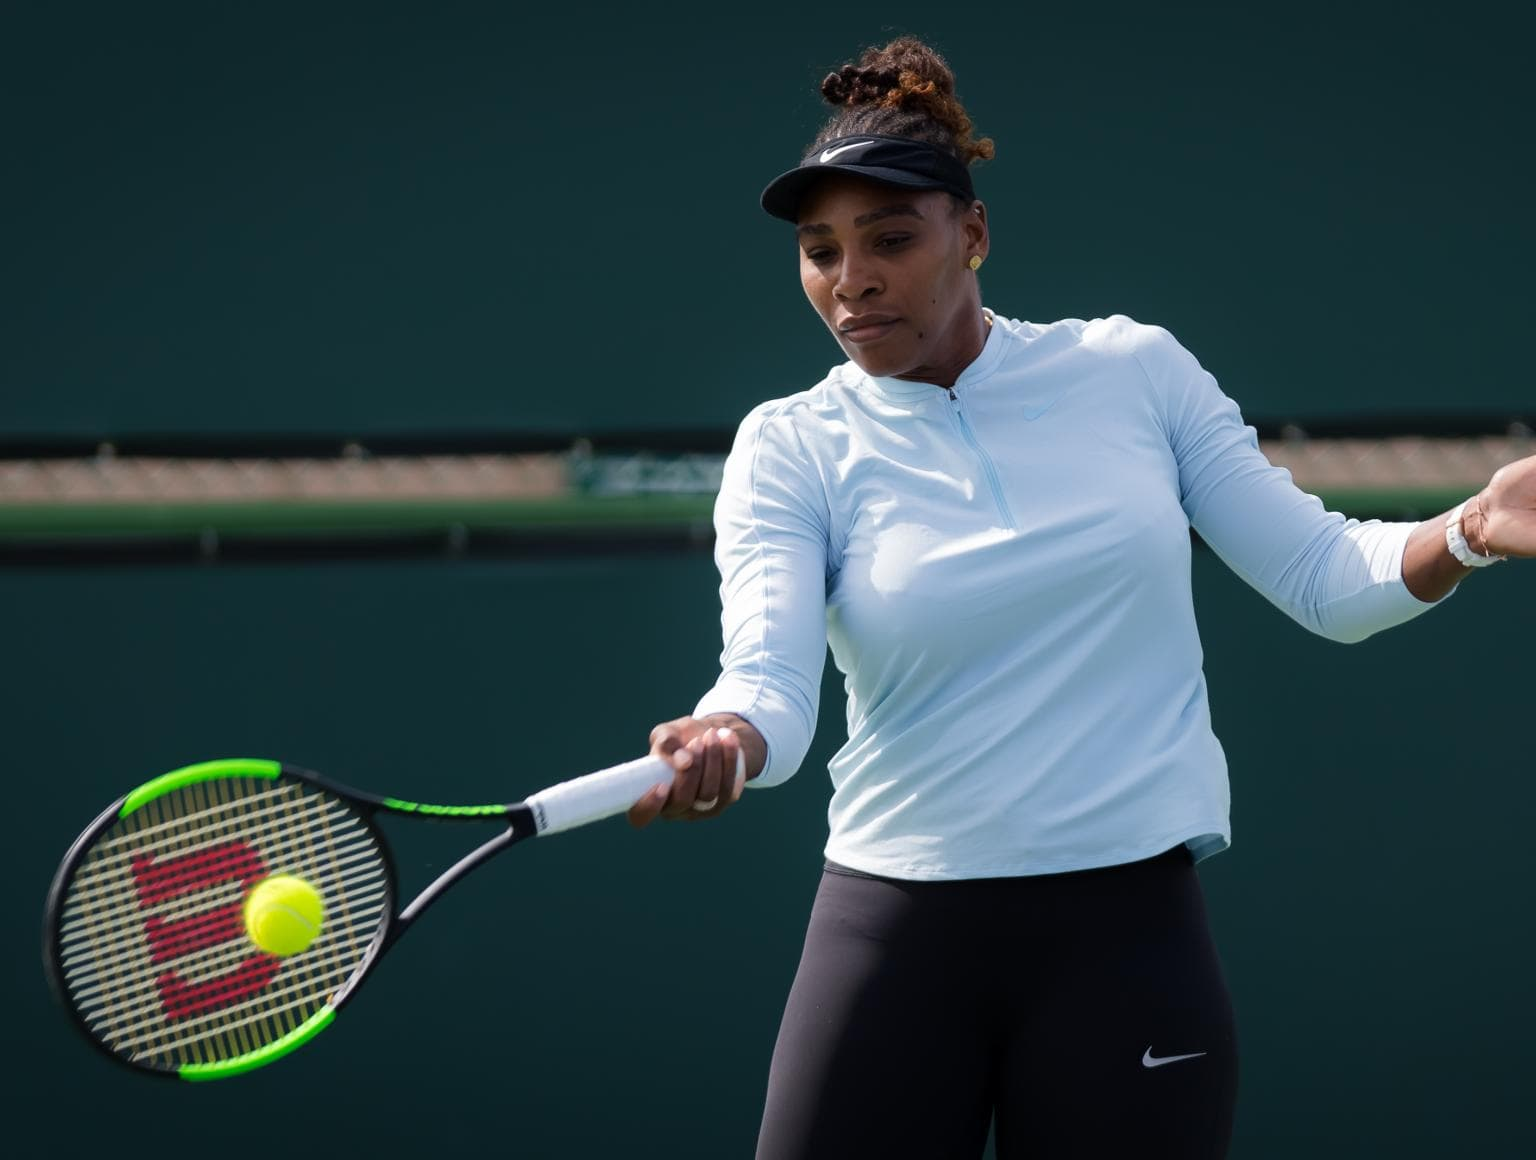 Serena Williams vs Victoria Azarenka Tennis Betting Tips